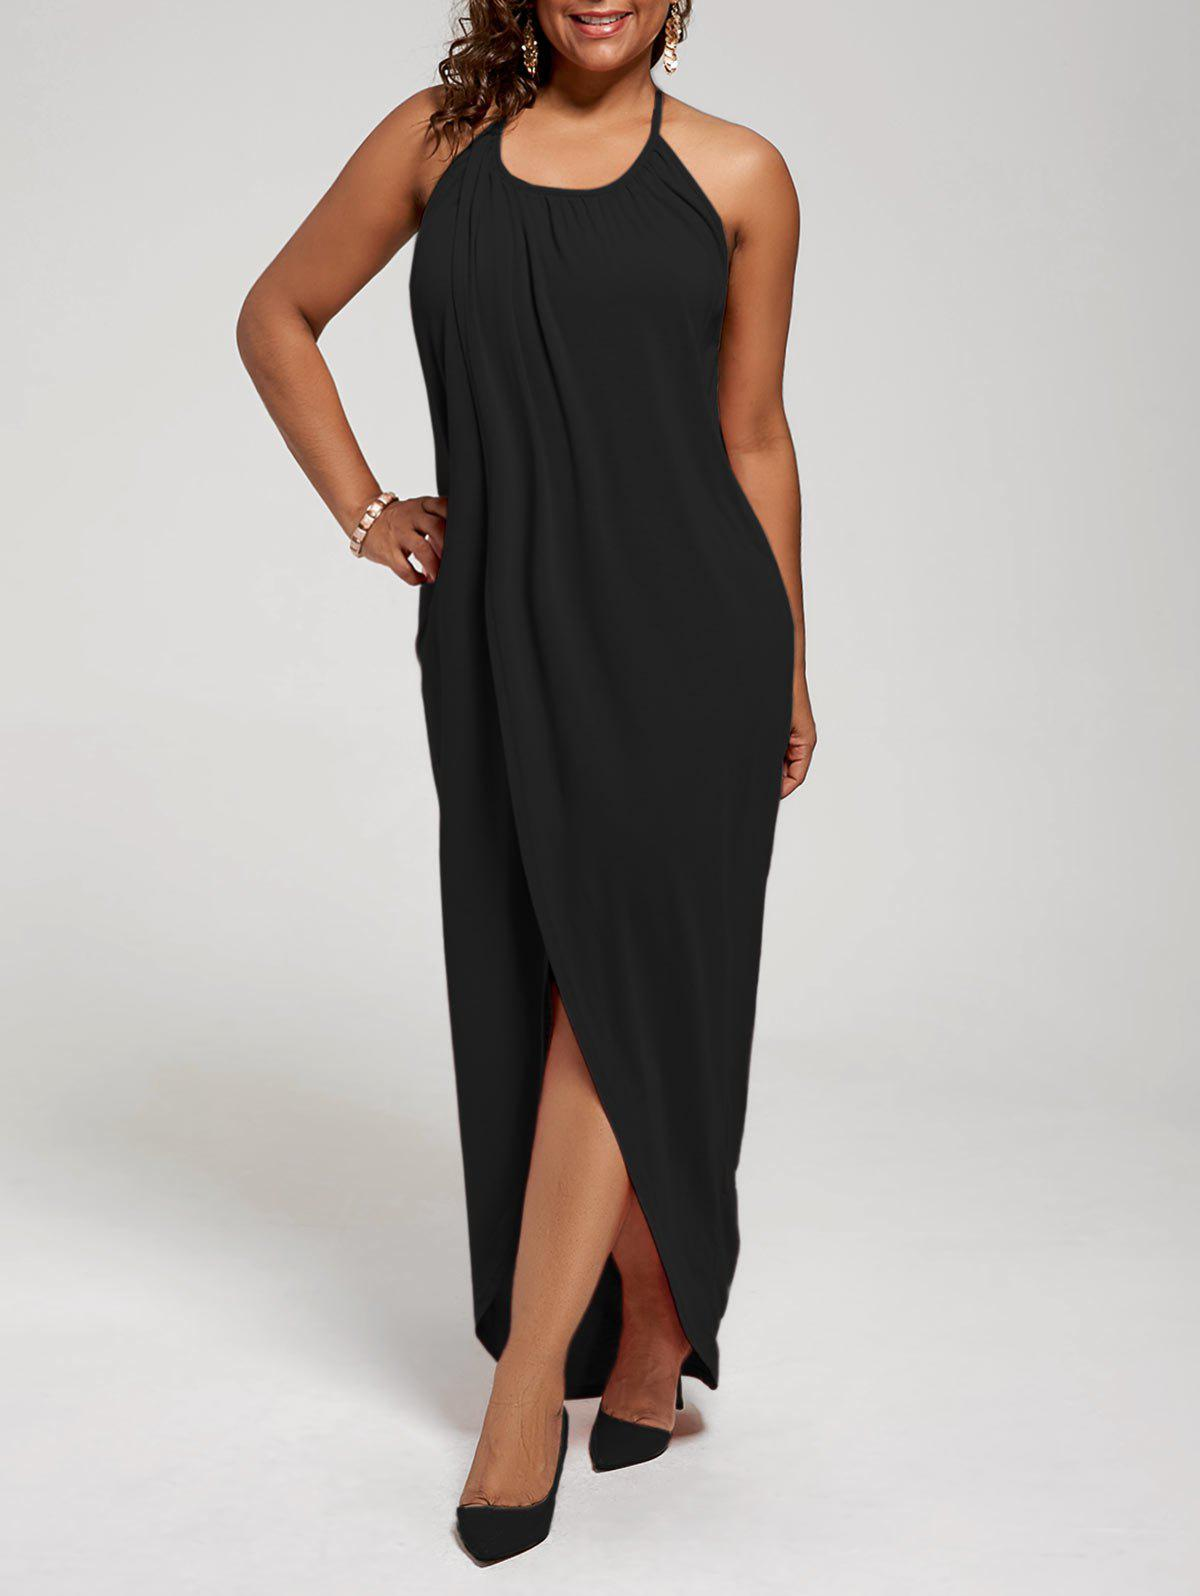 Plus Size Halter High Slit Maxi DressWOMEN<br><br>Size: XL; Color: BLACK; Style: Casual; Material: Polyester,Spandex; Silhouette: Sheath; Dresses Length: Ankle-Length; Neckline: Halter; Sleeve Length: Sleeveless; Pattern Type: Solid Color; With Belt: No; Season: Summer; Weight: 0.3500kg; Package Contents: 1 x Dress;